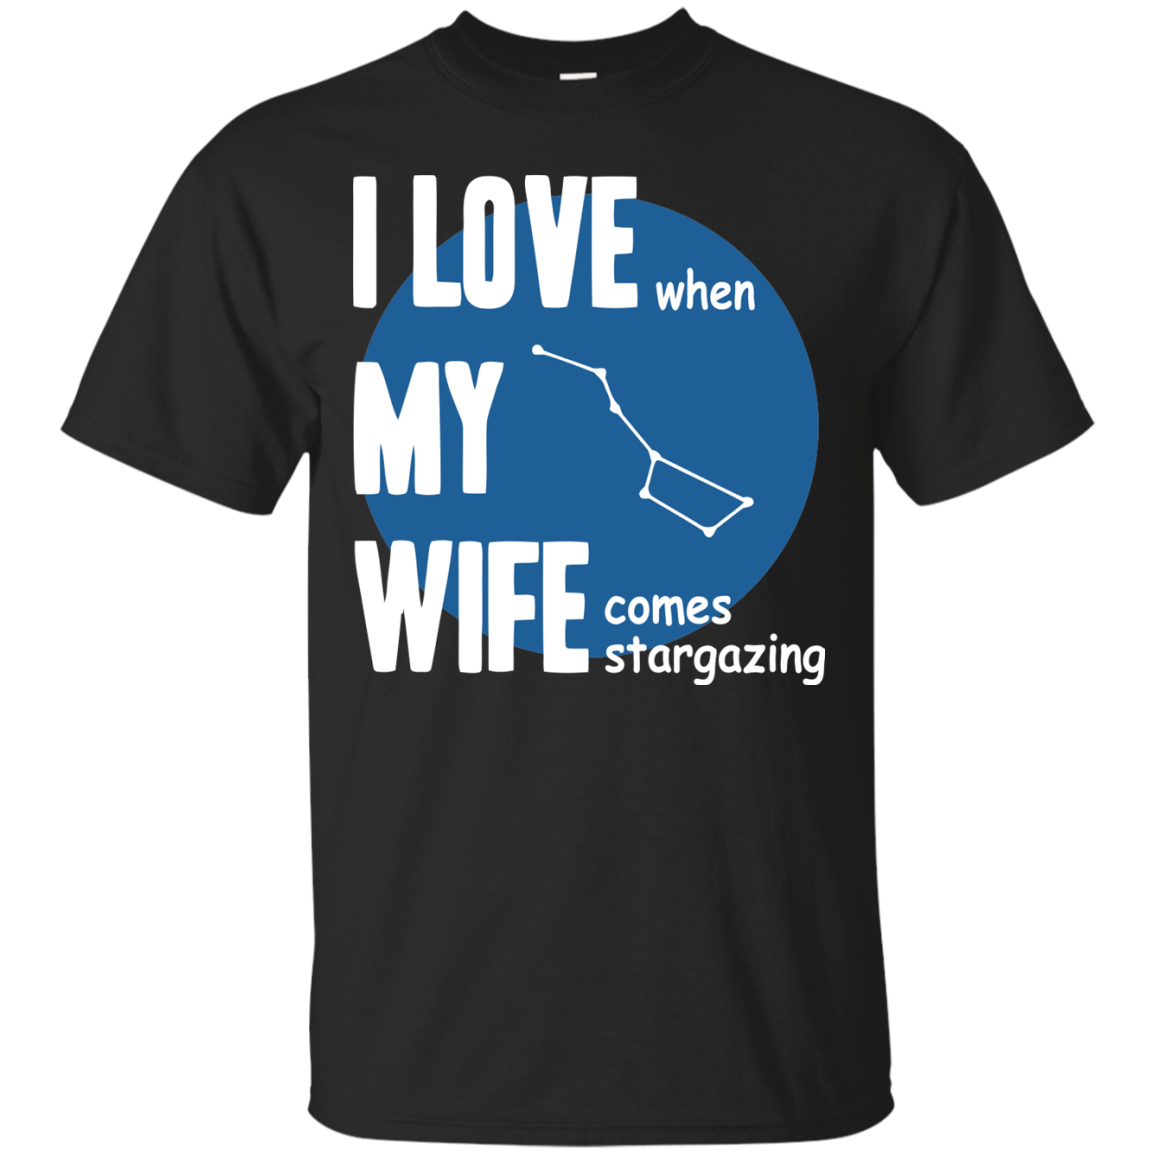 Astronomer T-Shirts Hoodies I Love When  My Wife Come Stargazing